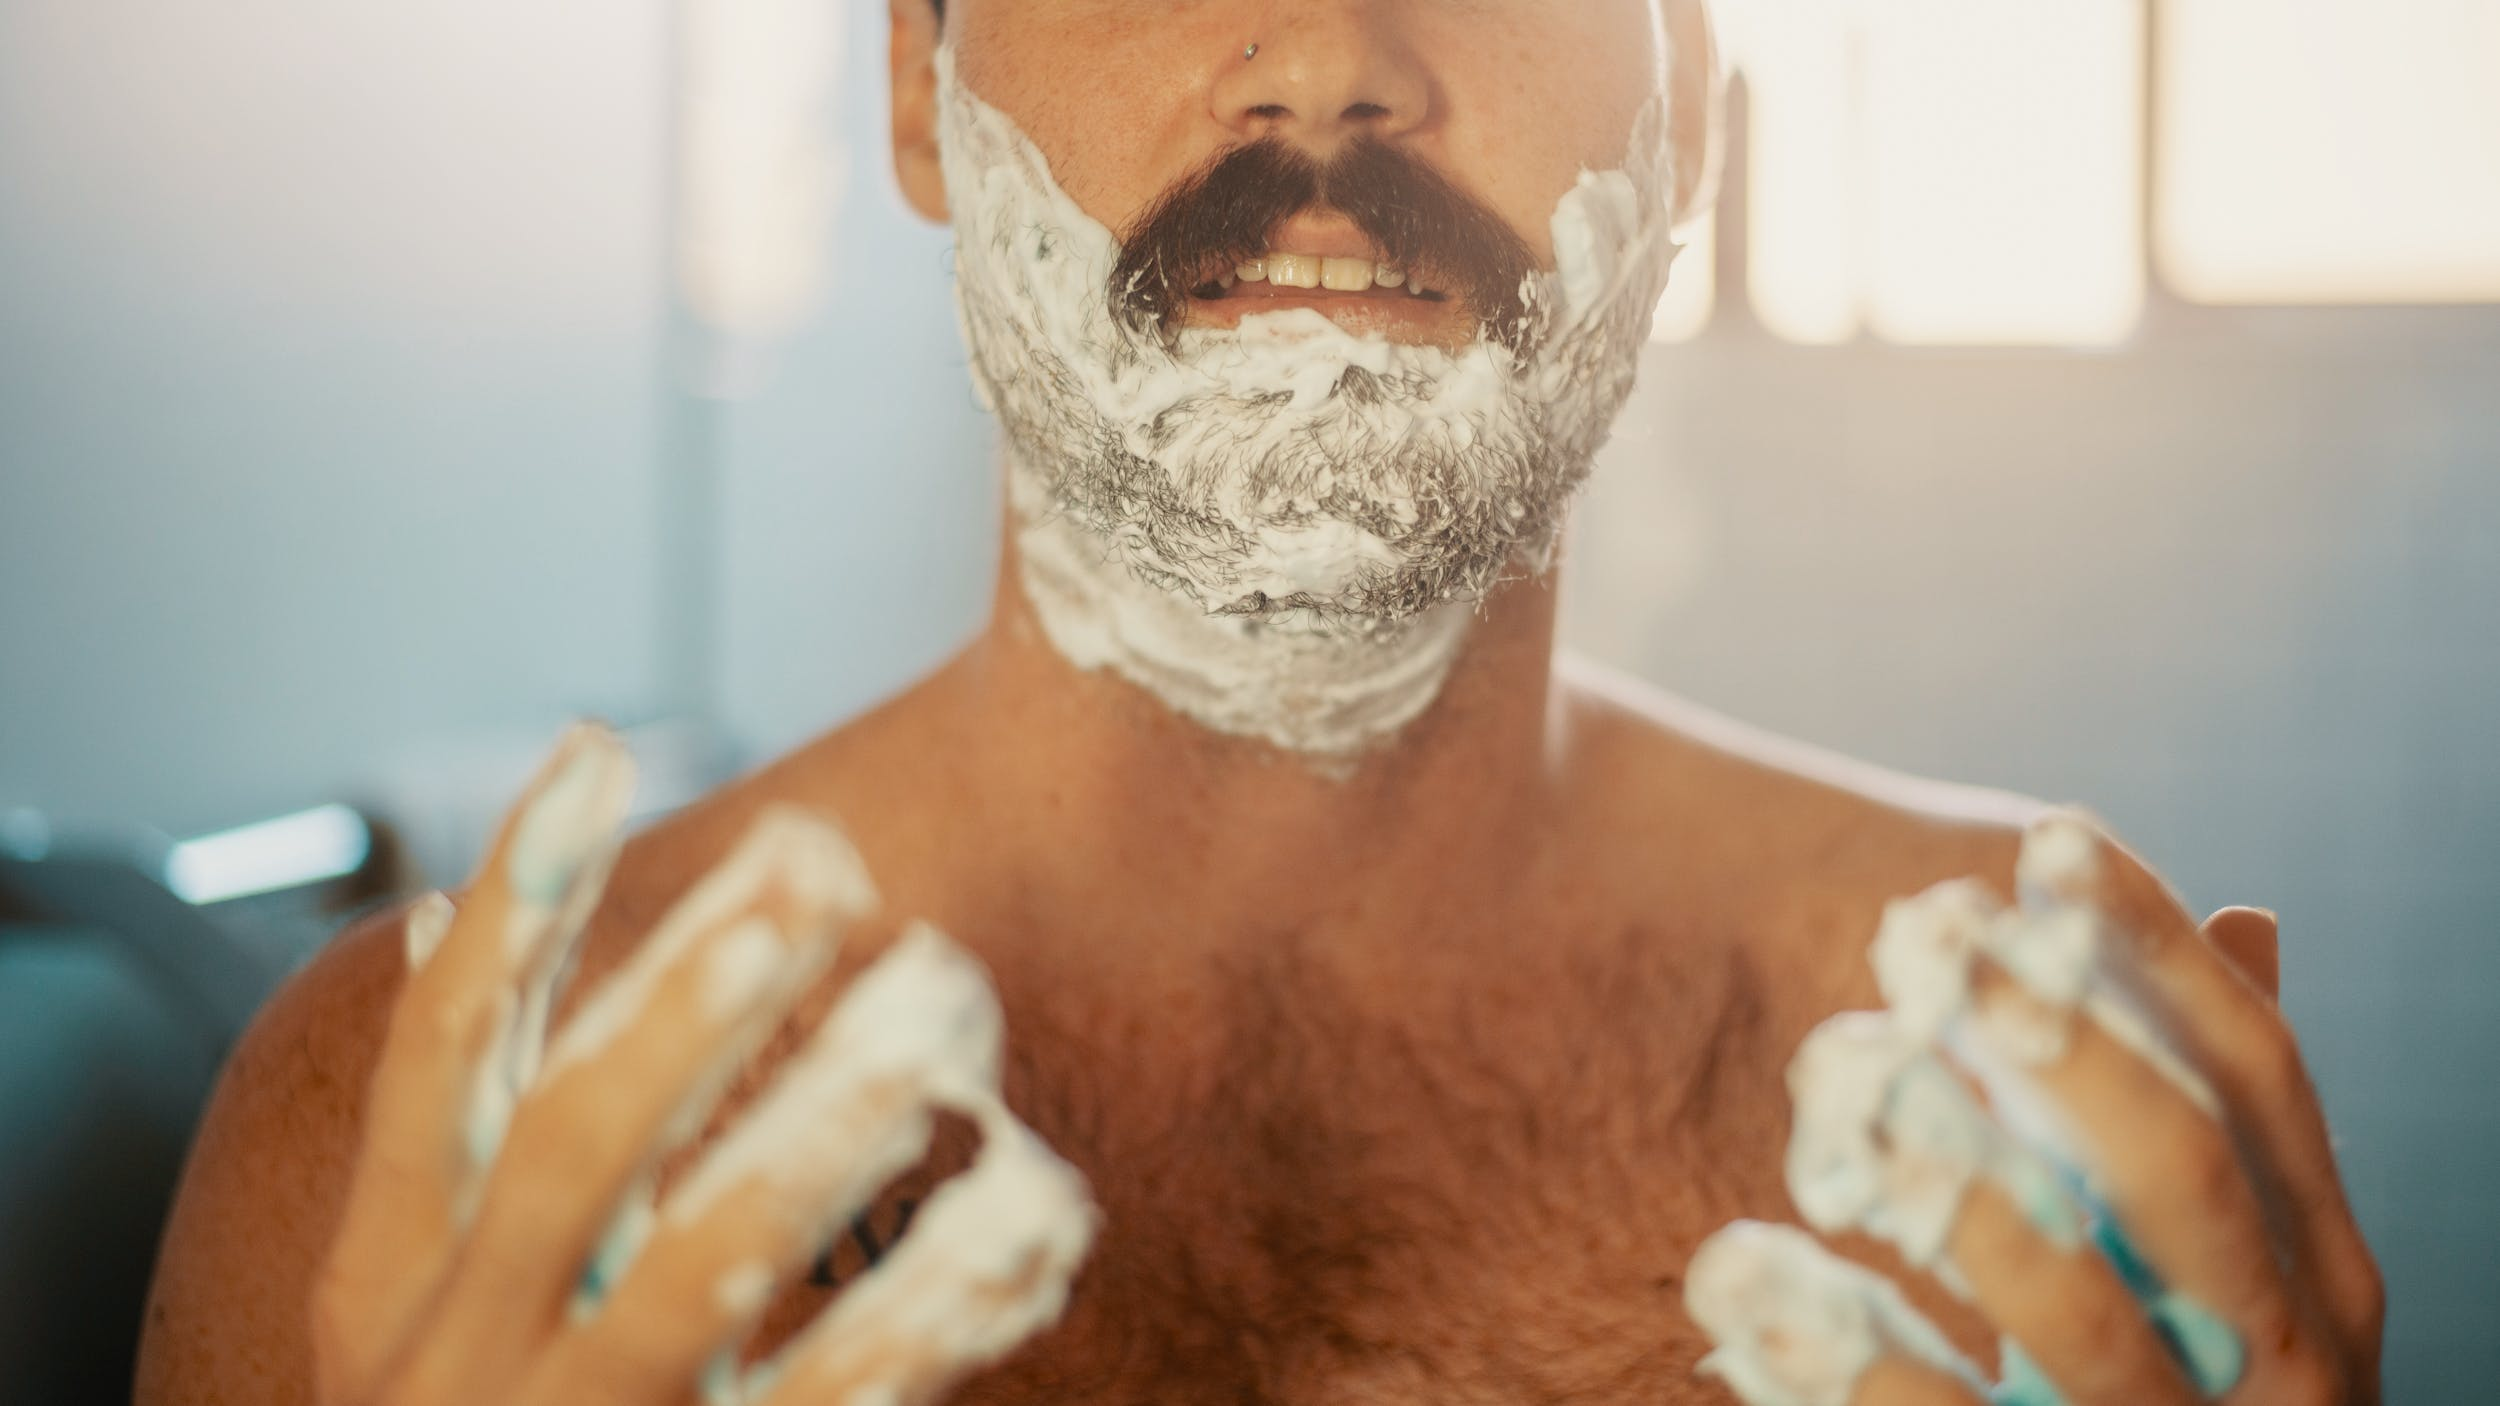 A man shaves using one of the products on the Herb holiday gift guide from Jack